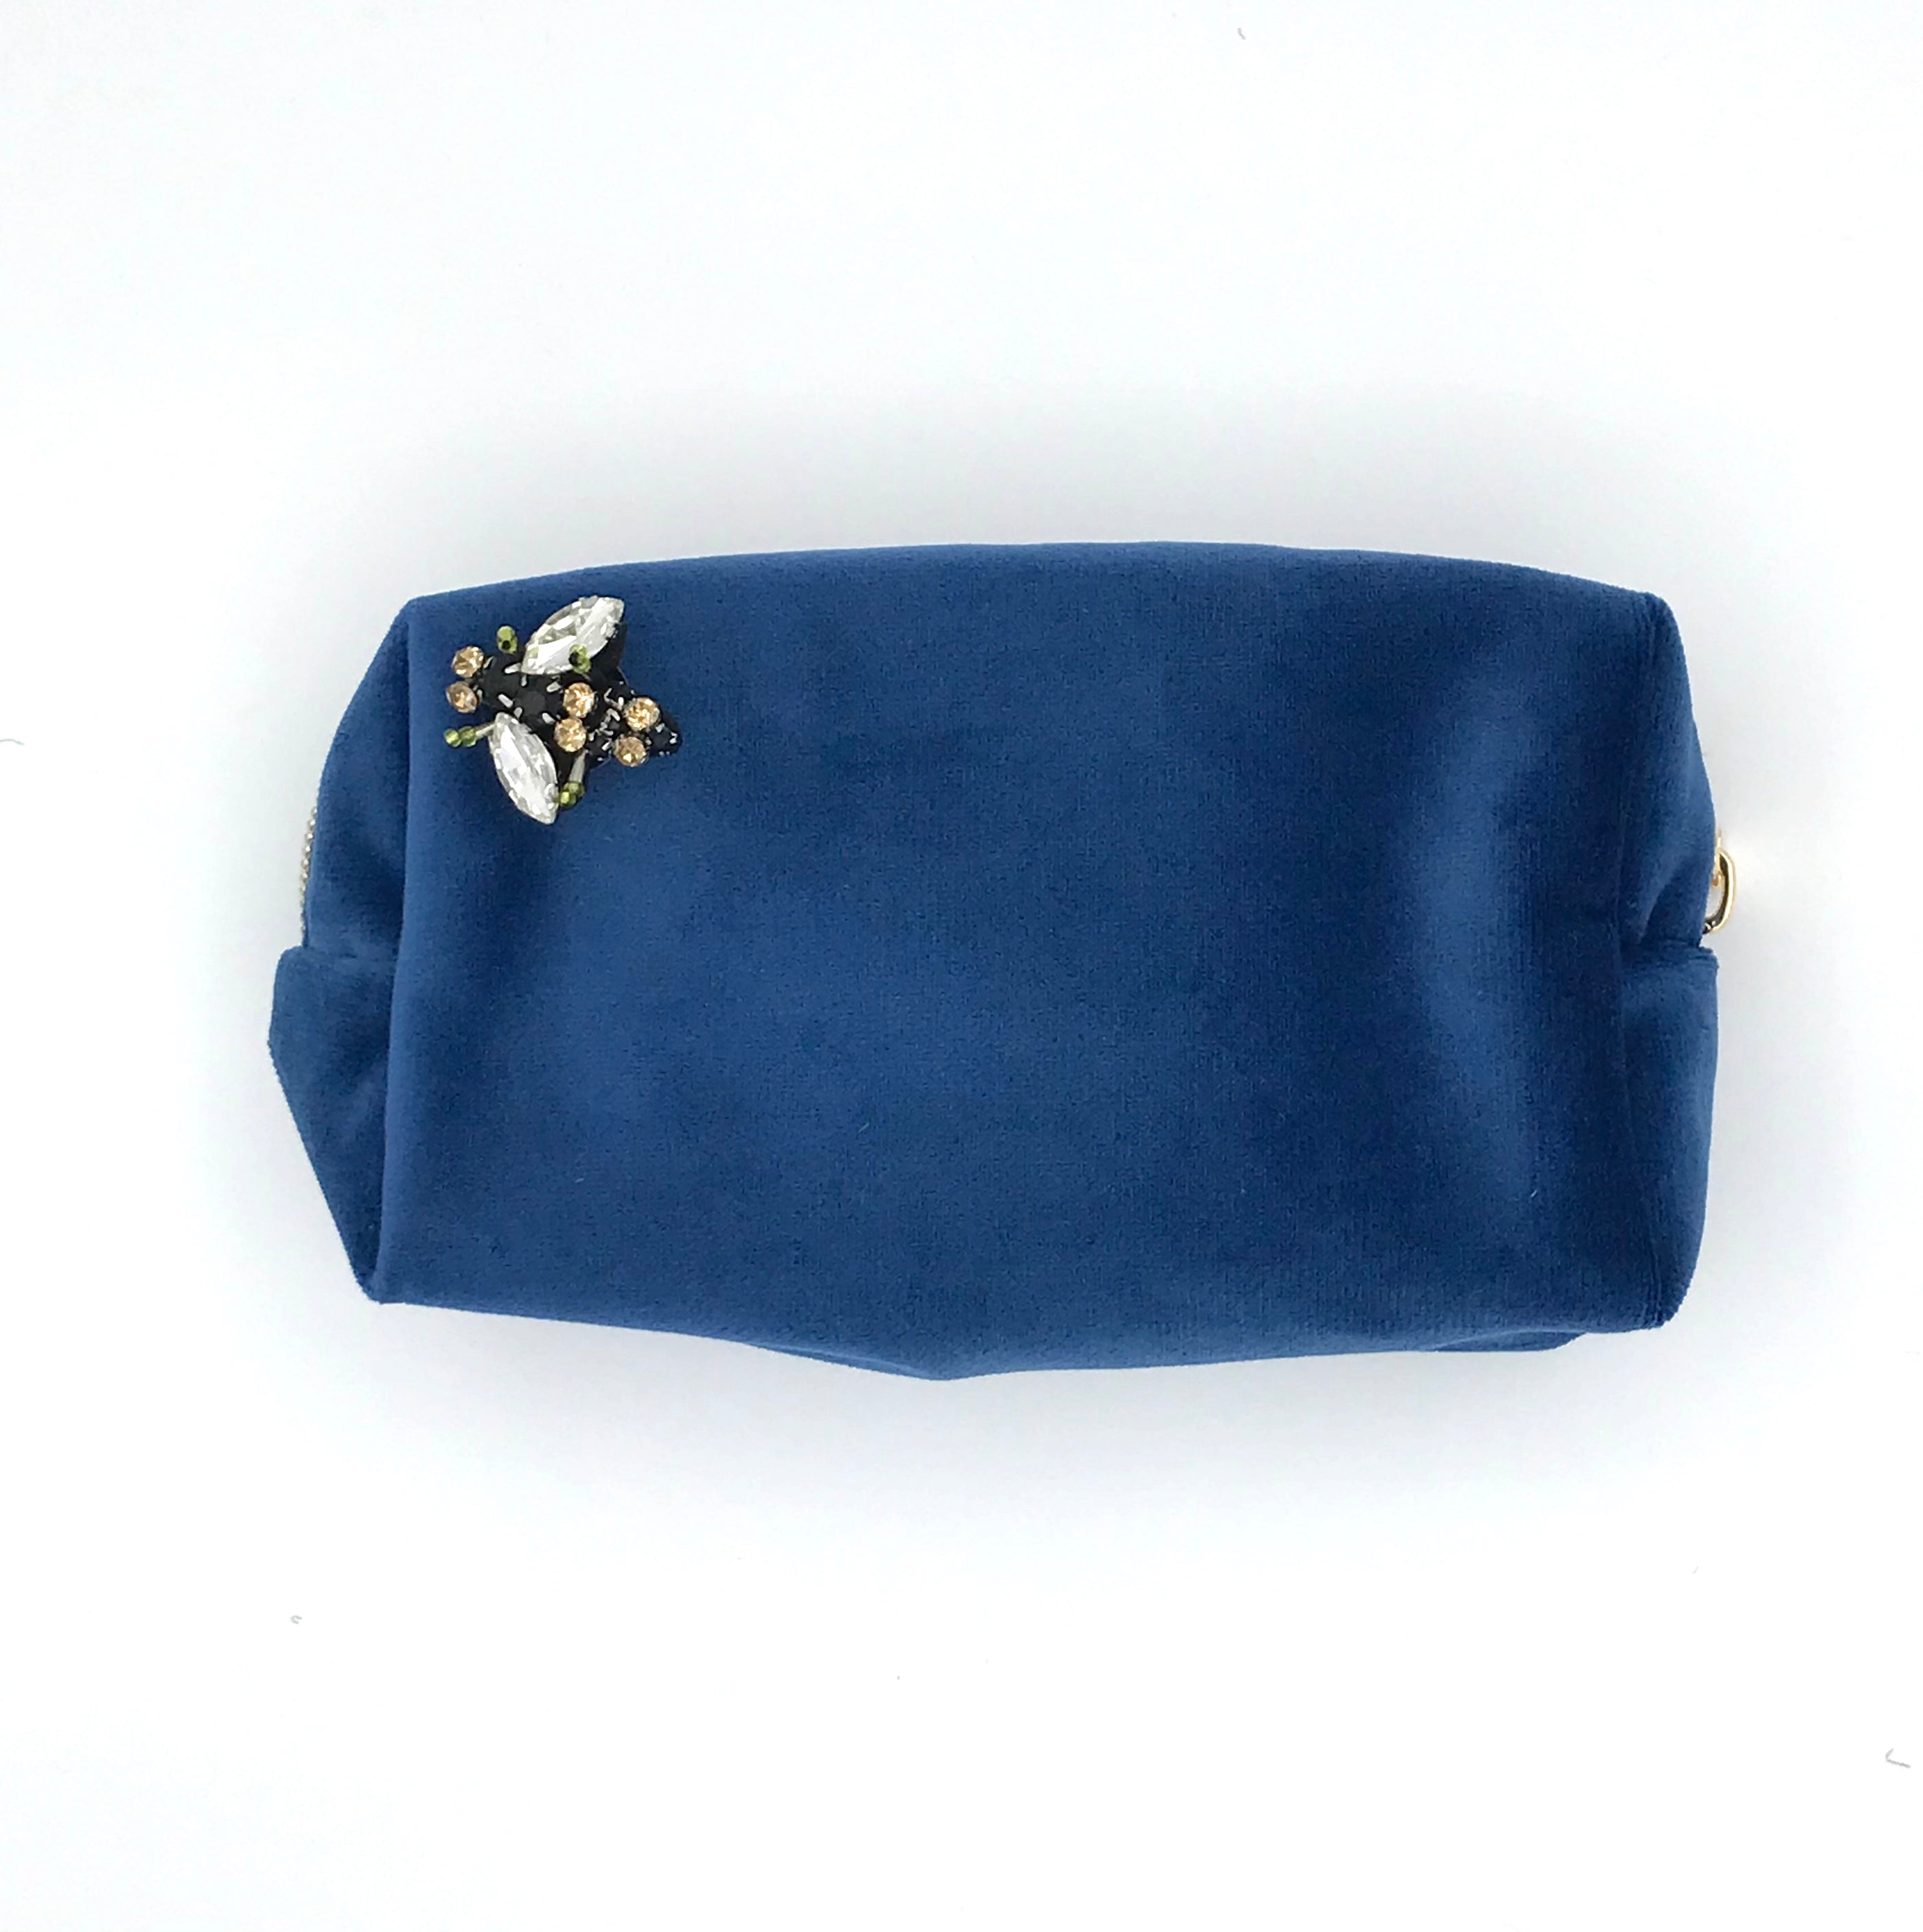 Velvet make-up bag in royal blue with a bumblebee pin